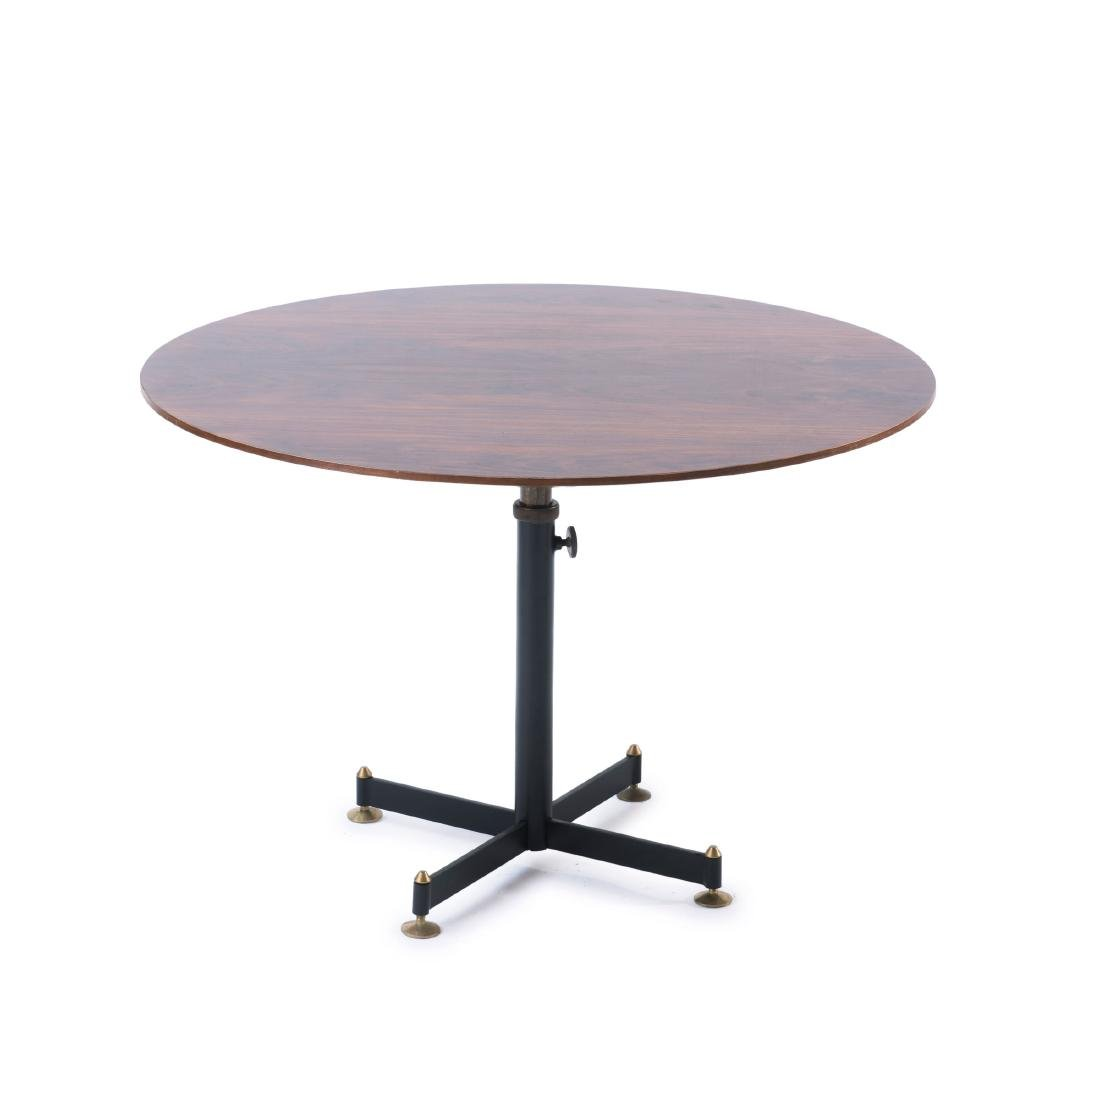 Table, c. 1955